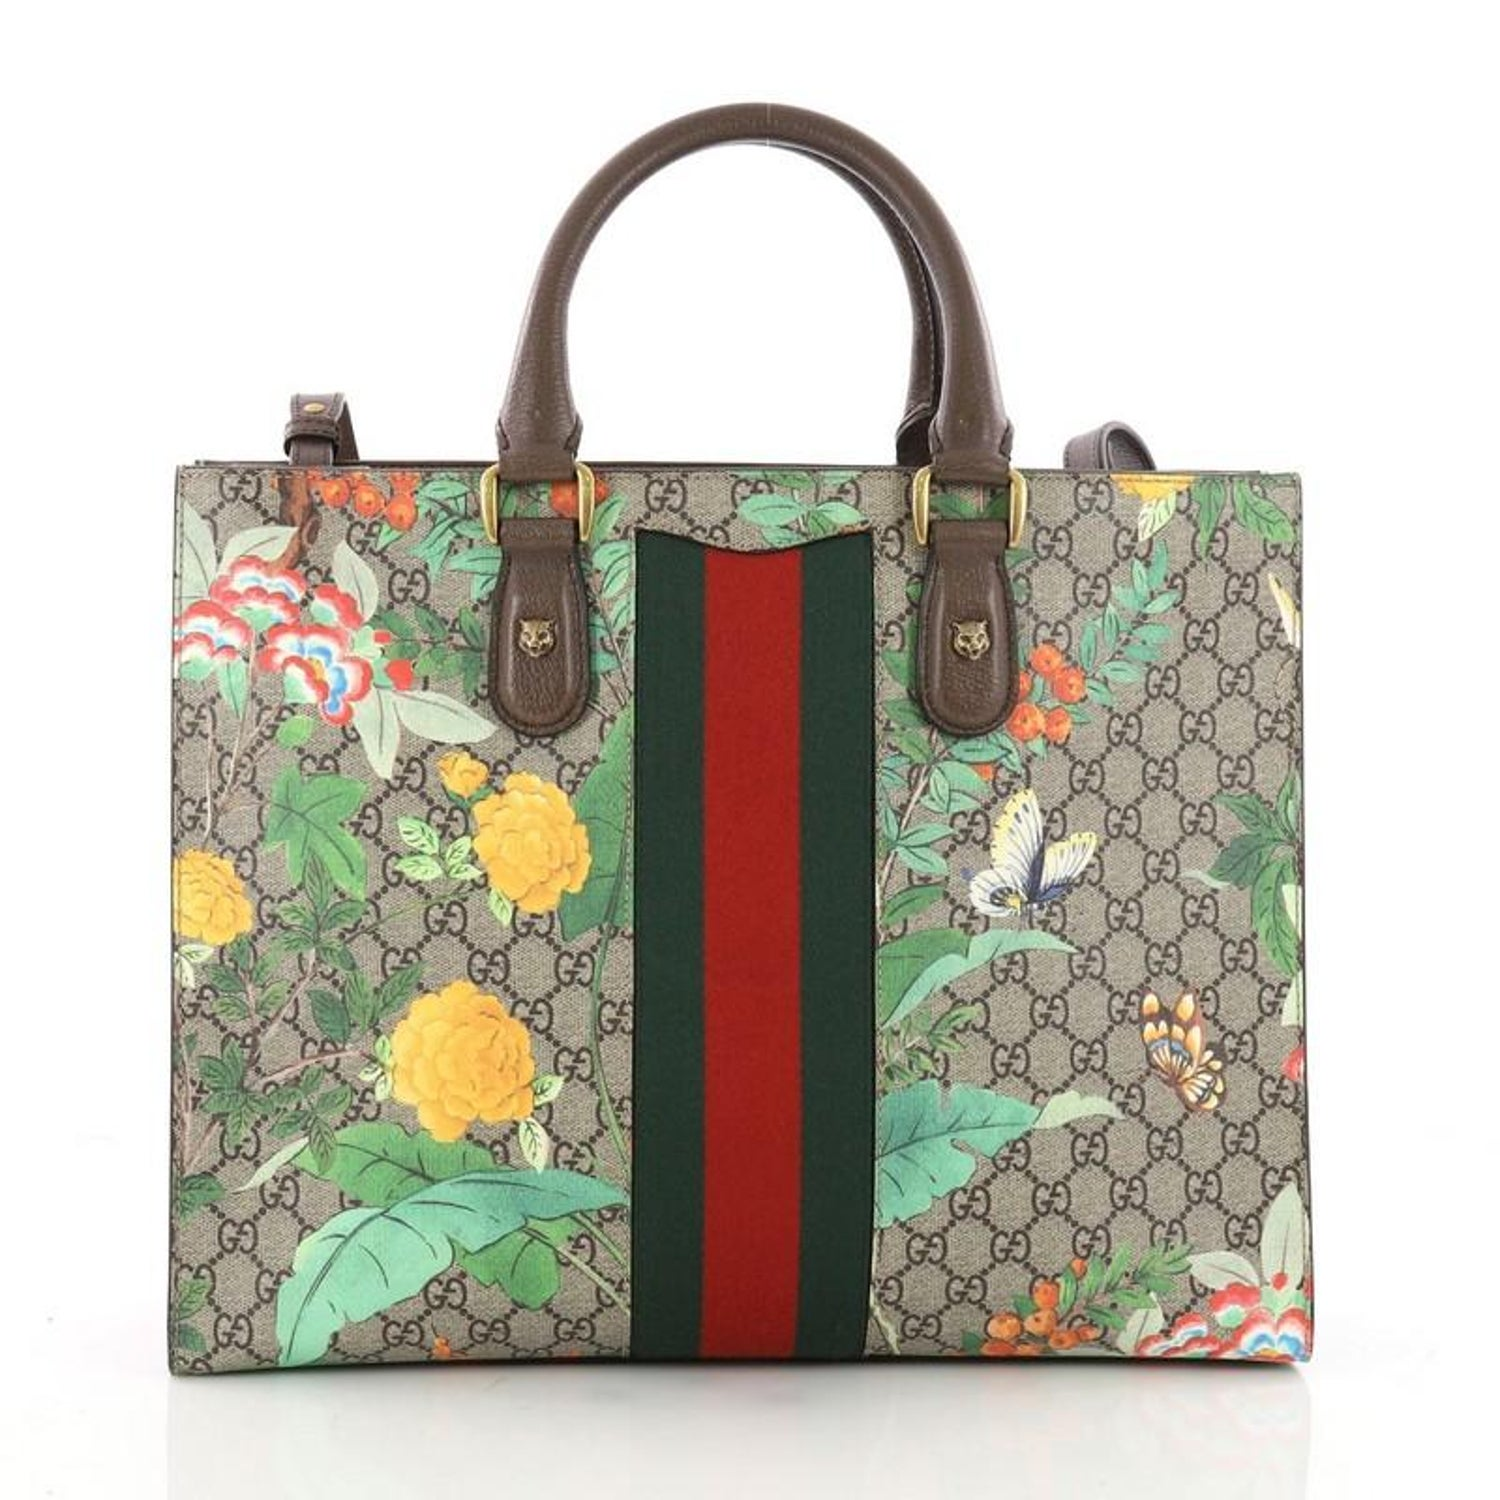 91cd1557e0c6 Gucci Animalier Web Top Handle Tote Tian Print GG Coated Canvas Large at  1stdibs